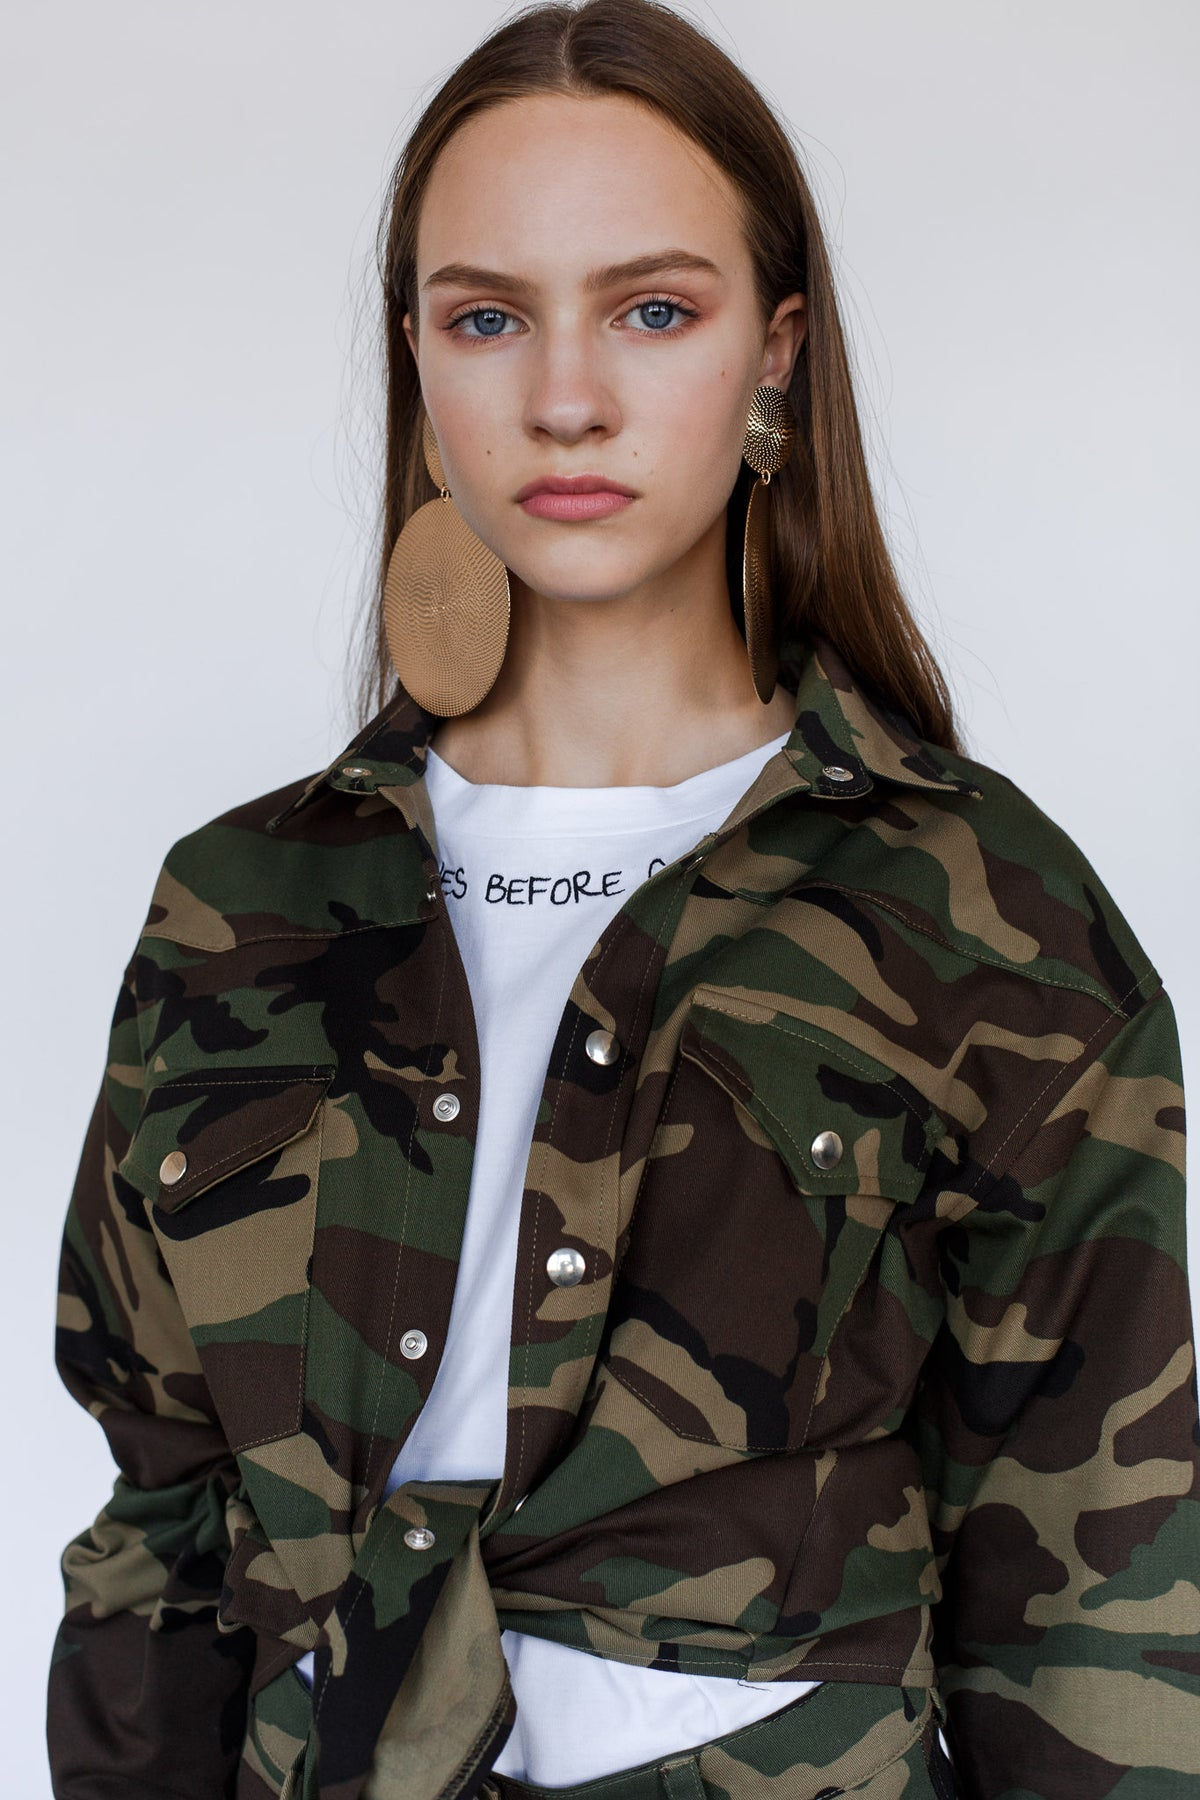 Camo-Series-Oversize-Camouflage-Print-Jacket-Outwear-Clothing-le-slap-details.jpg